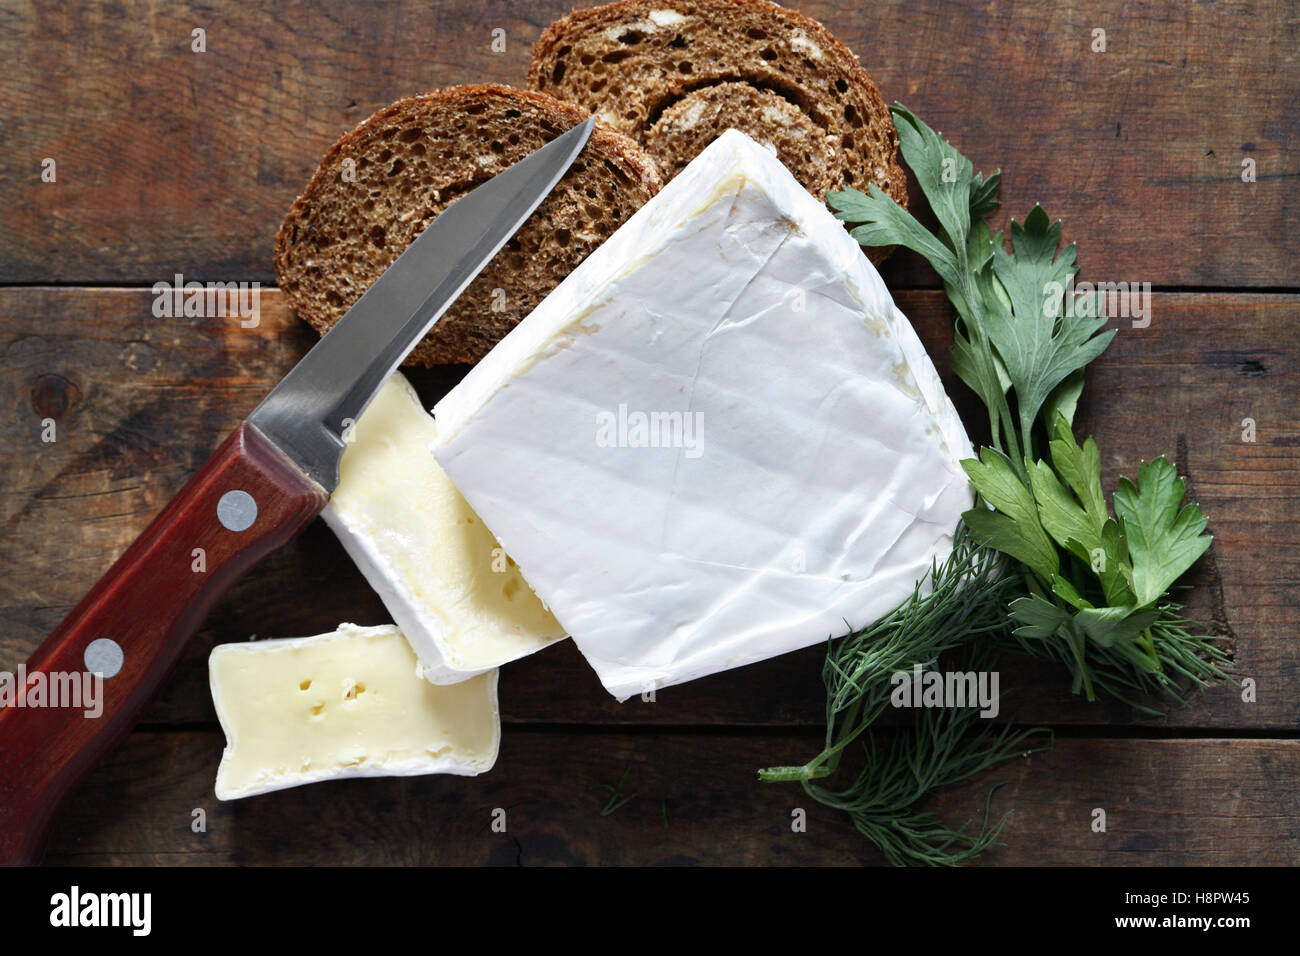 Piece of french brie cheese near knife and bread on old wooden background - Stock Image